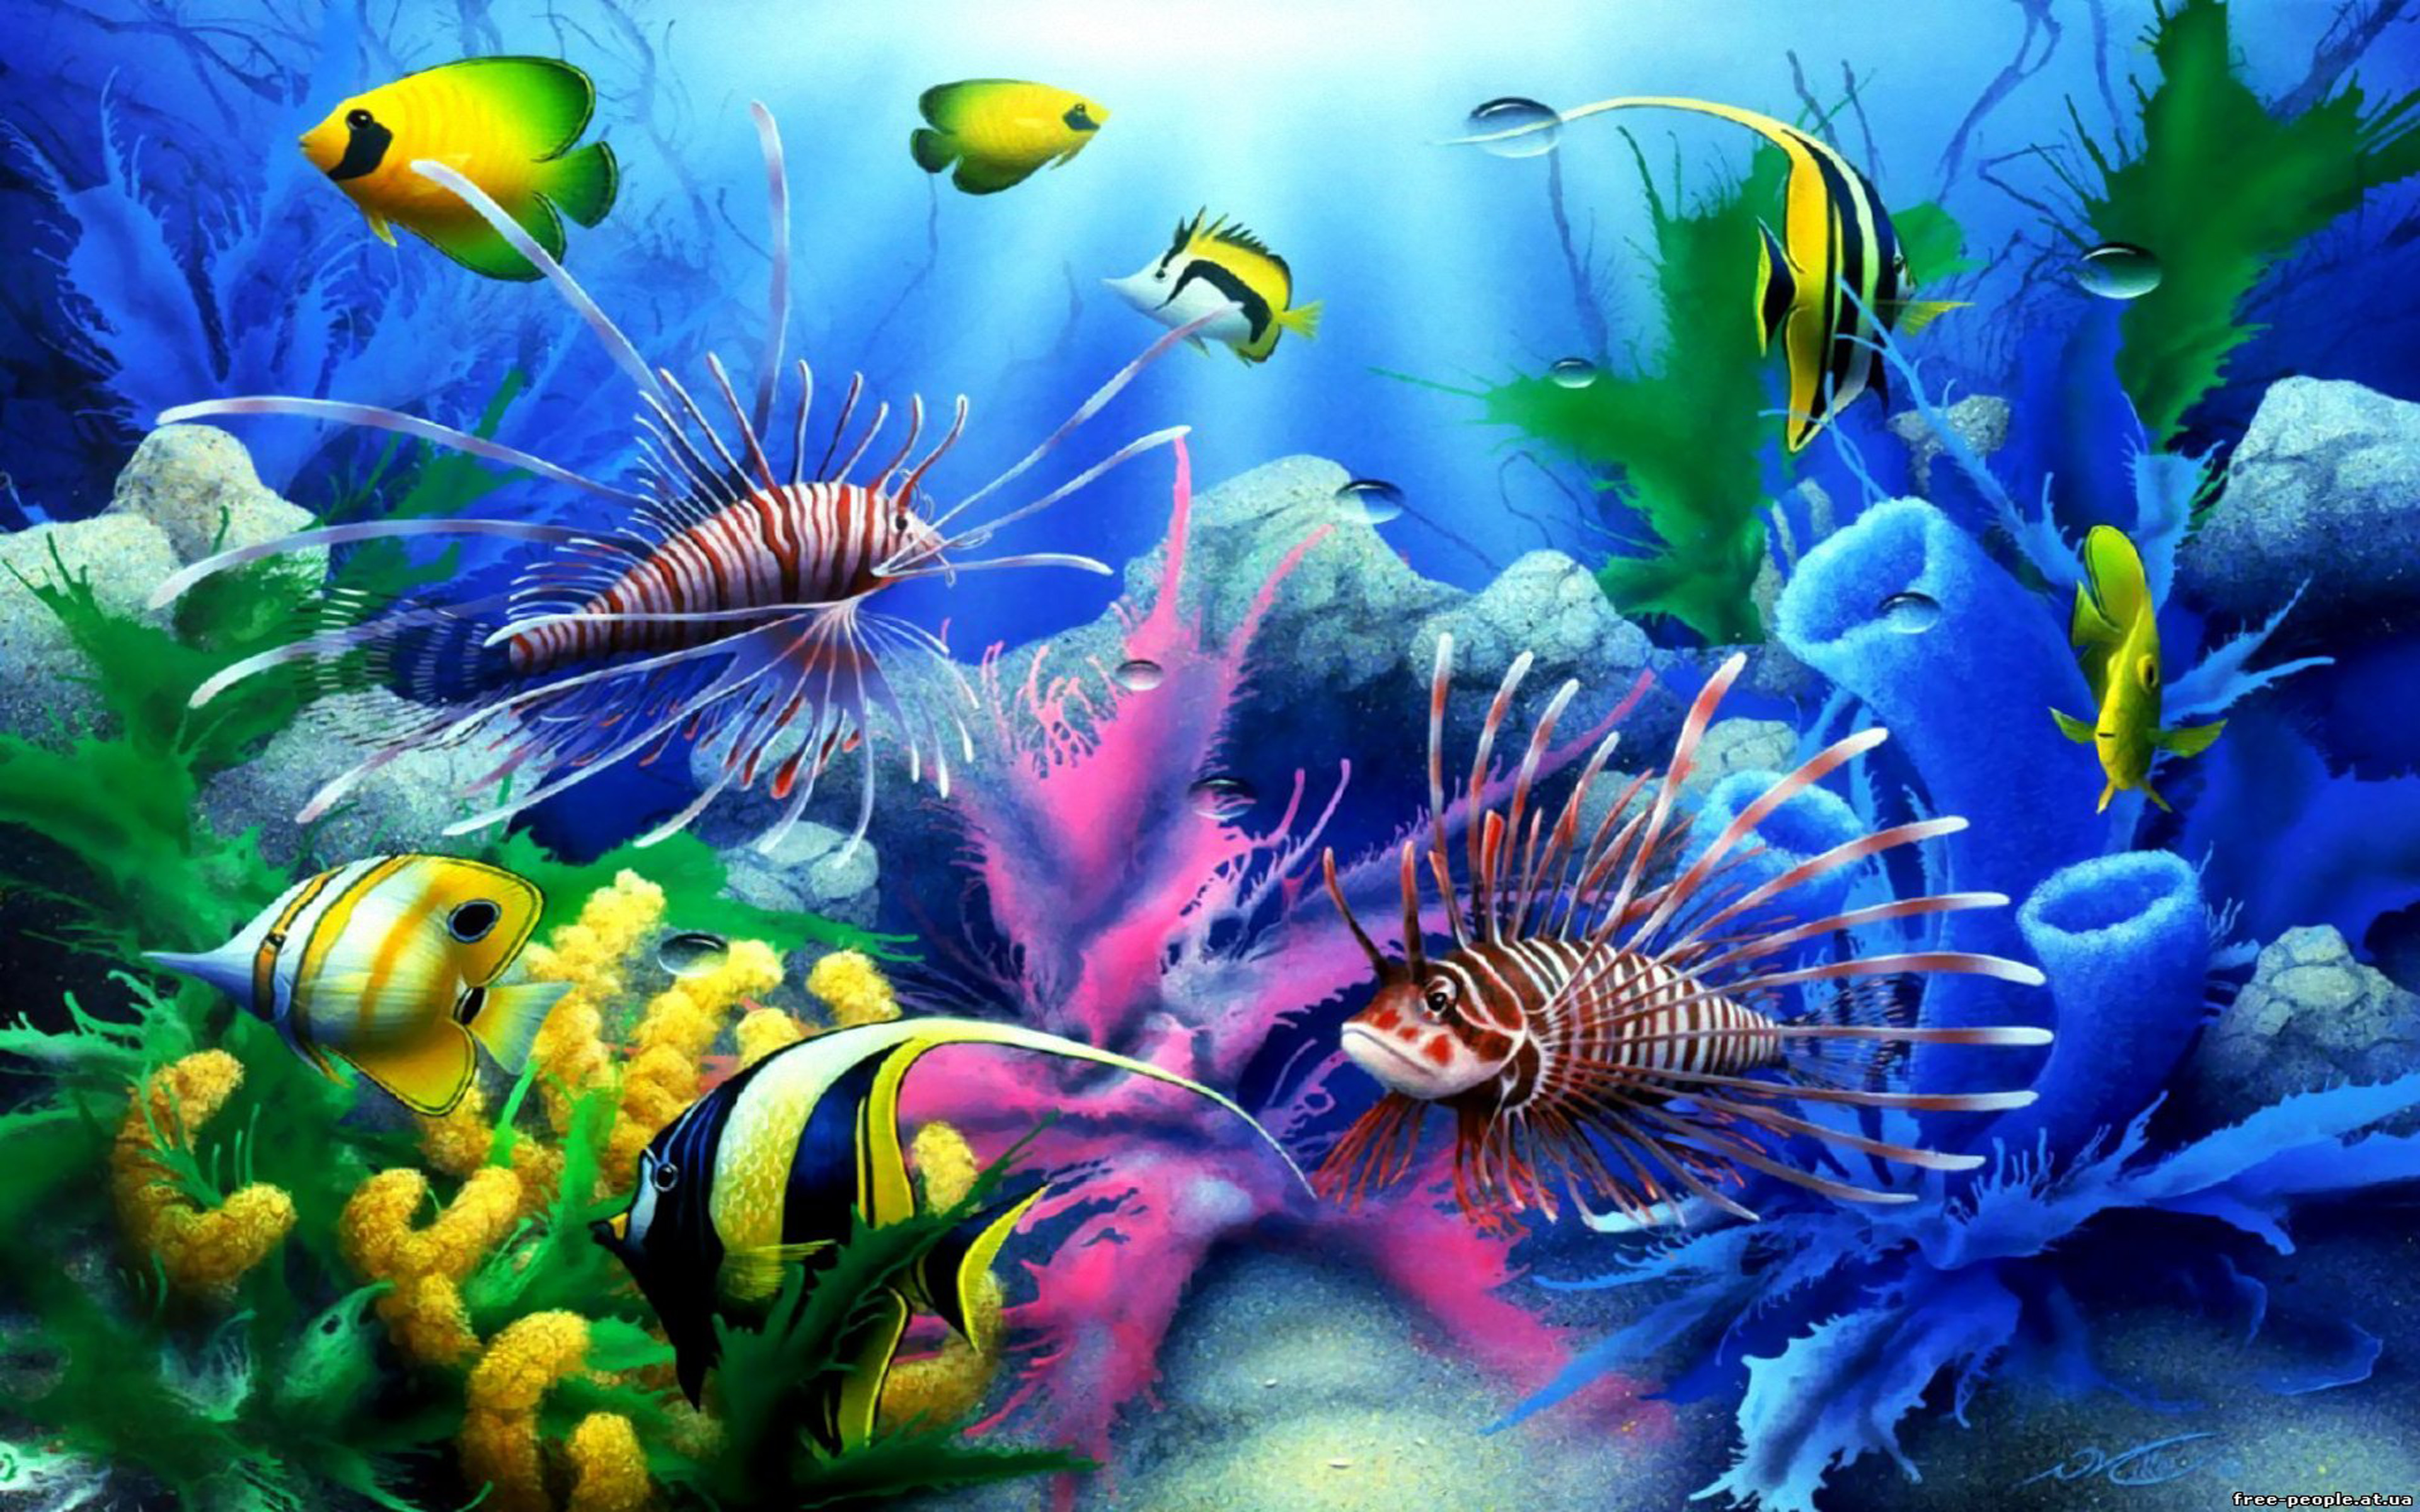 Cute Wallpapers For Phone Free Download Sea Seabed Colorful Tropical Fish Coral Wallpaper Hd For